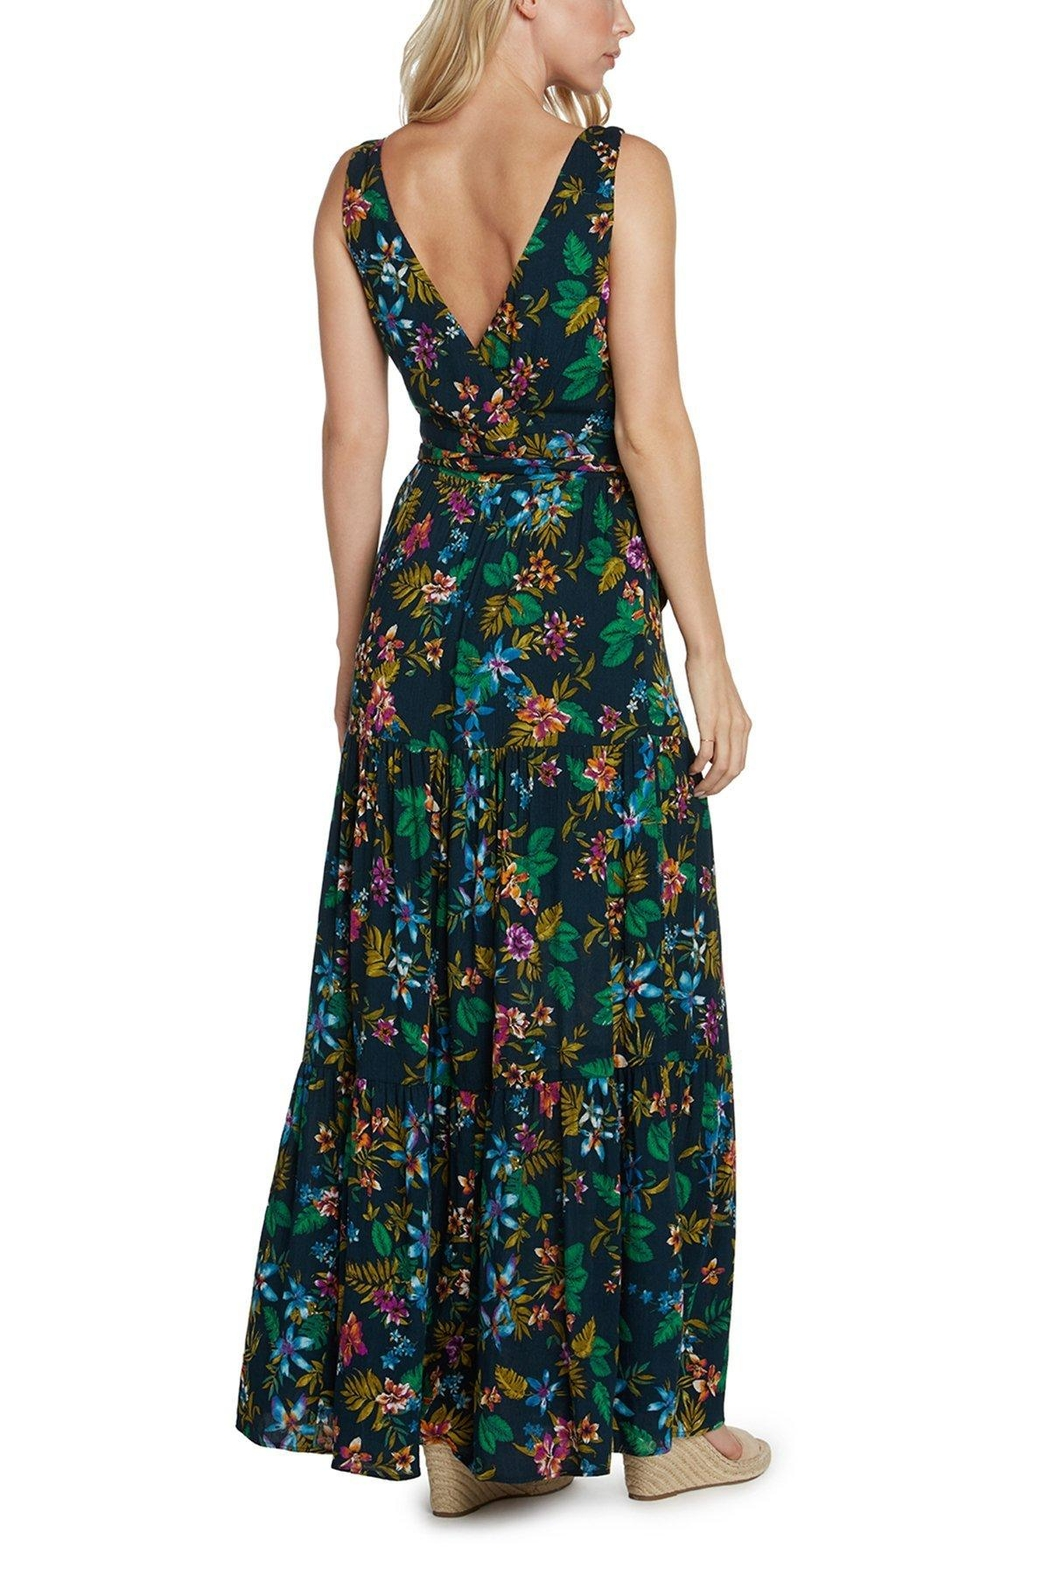 Willow & Clay Martine Maxi Dress - Side Cropped Image